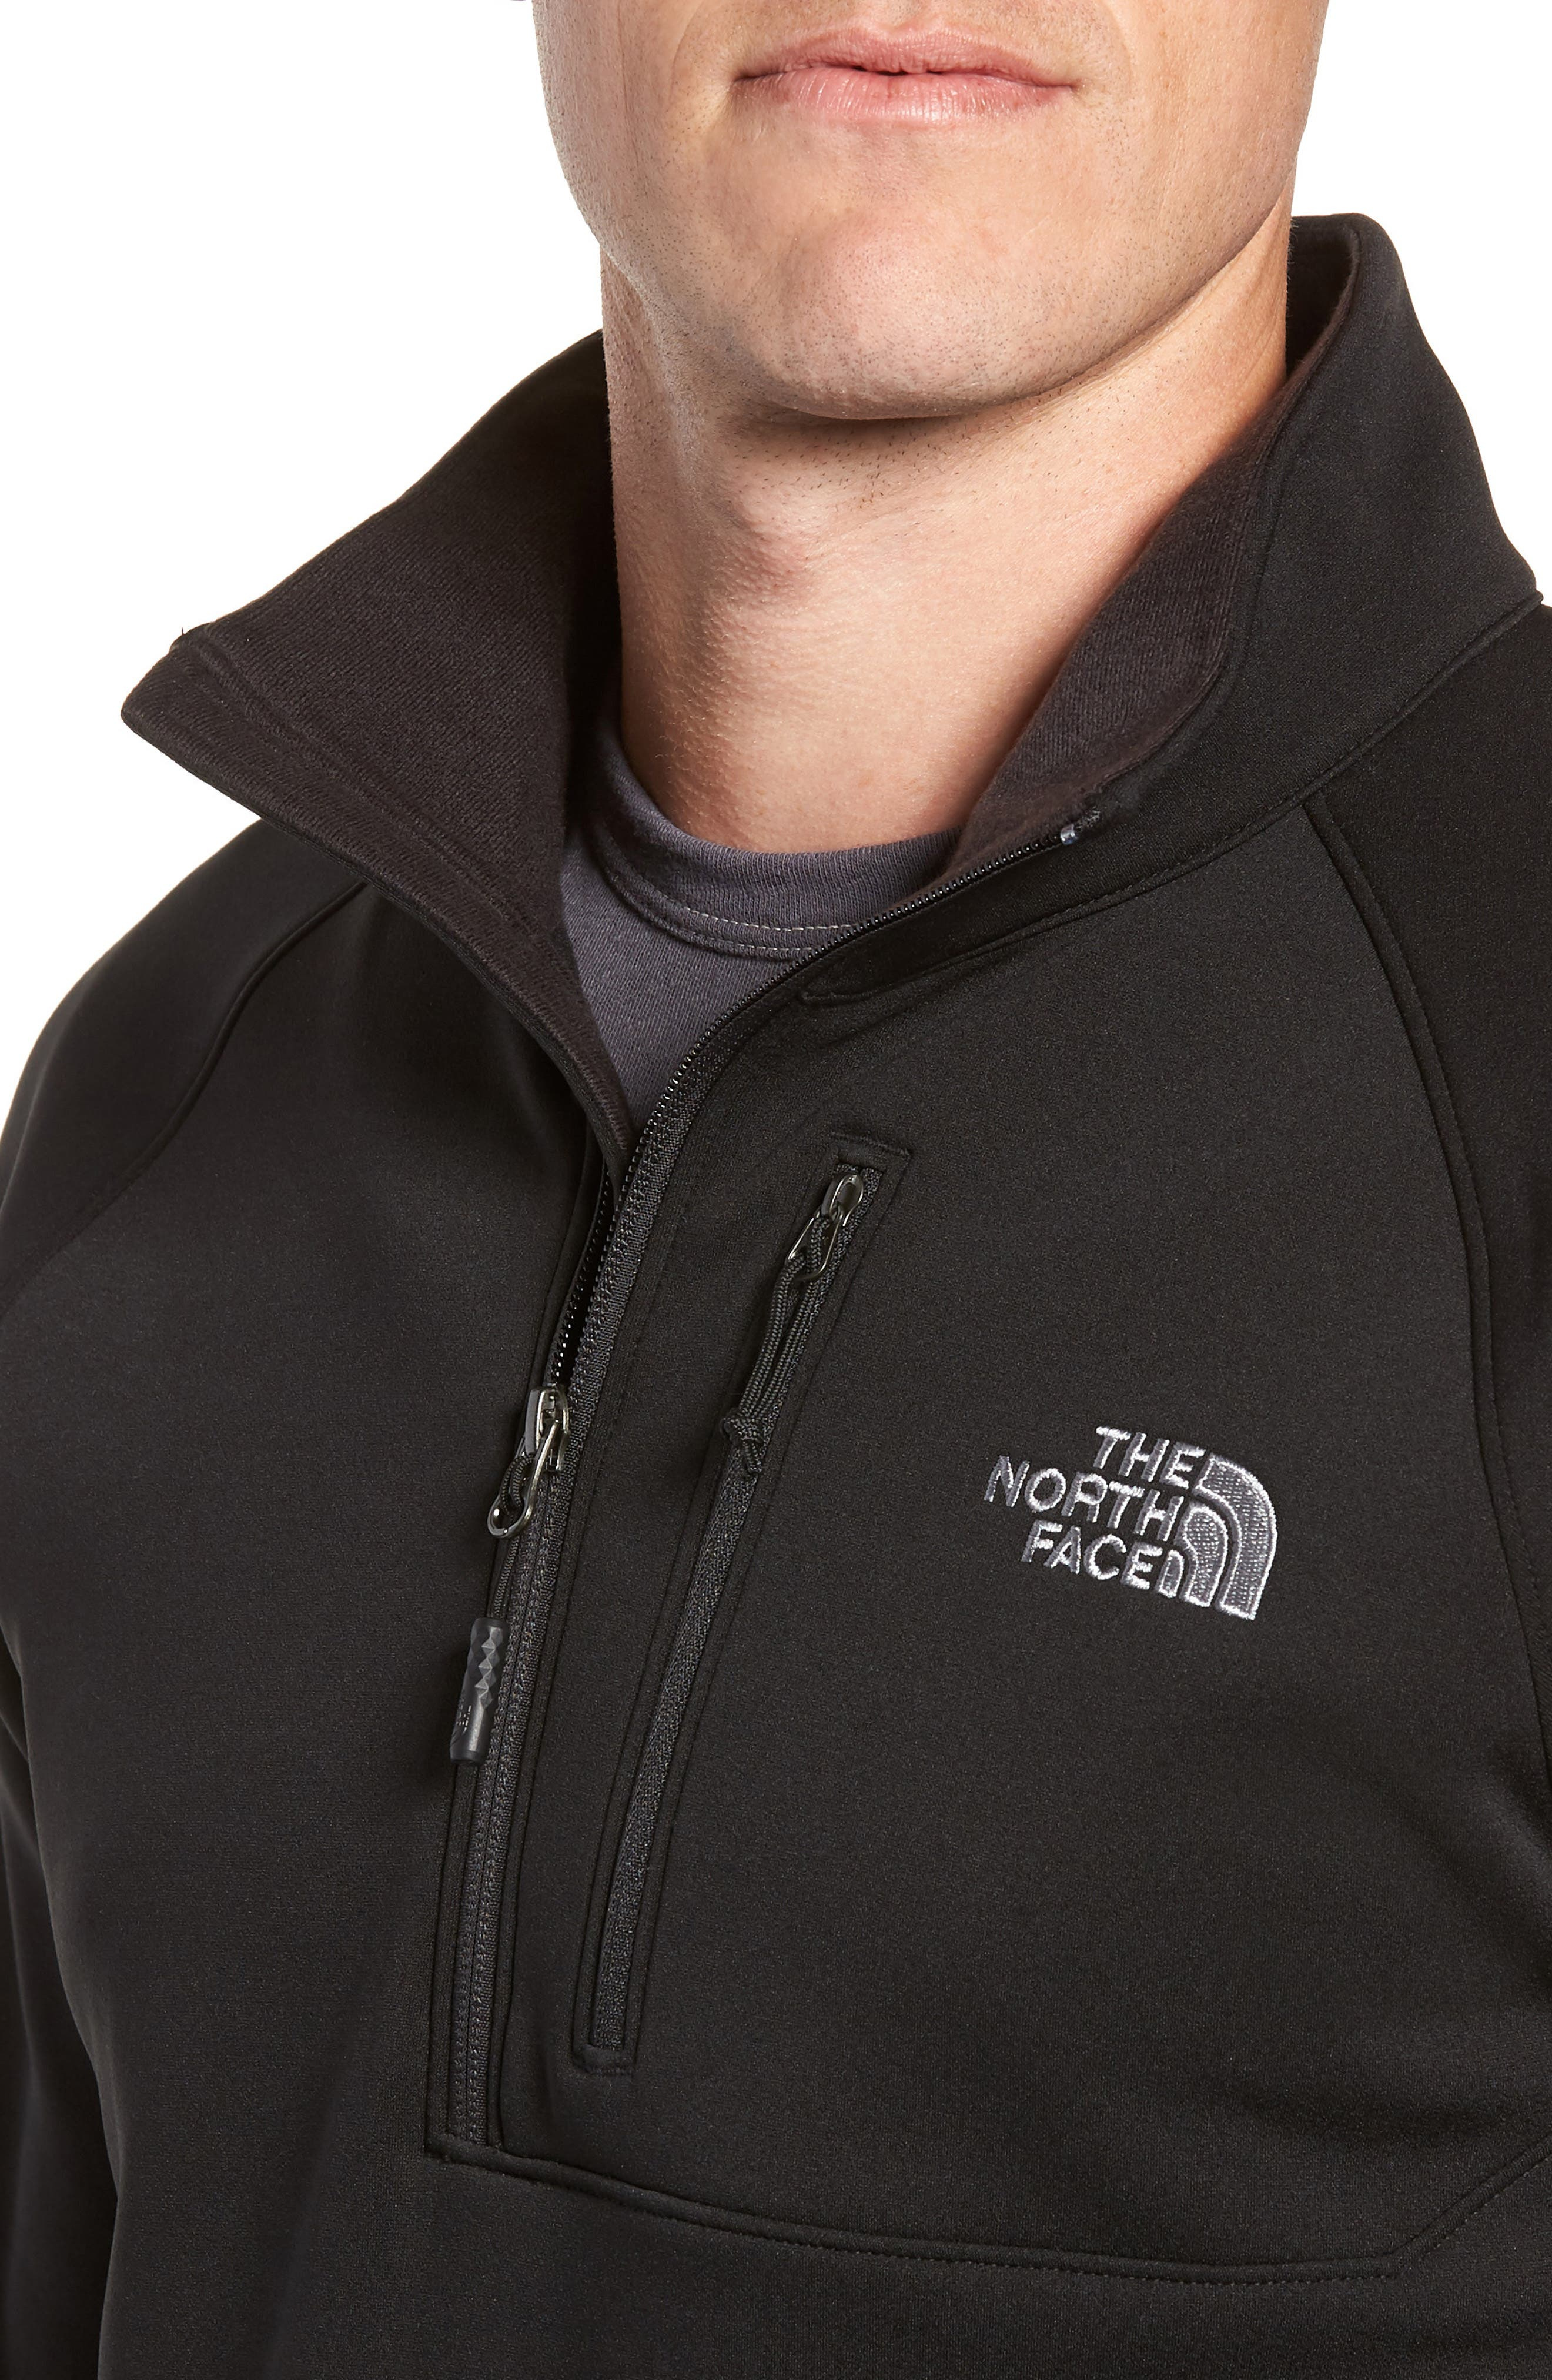 THE NORTH FACE,                             Tenacious Quarter Zip Pullover,                             Alternate thumbnail 4, color,                             001